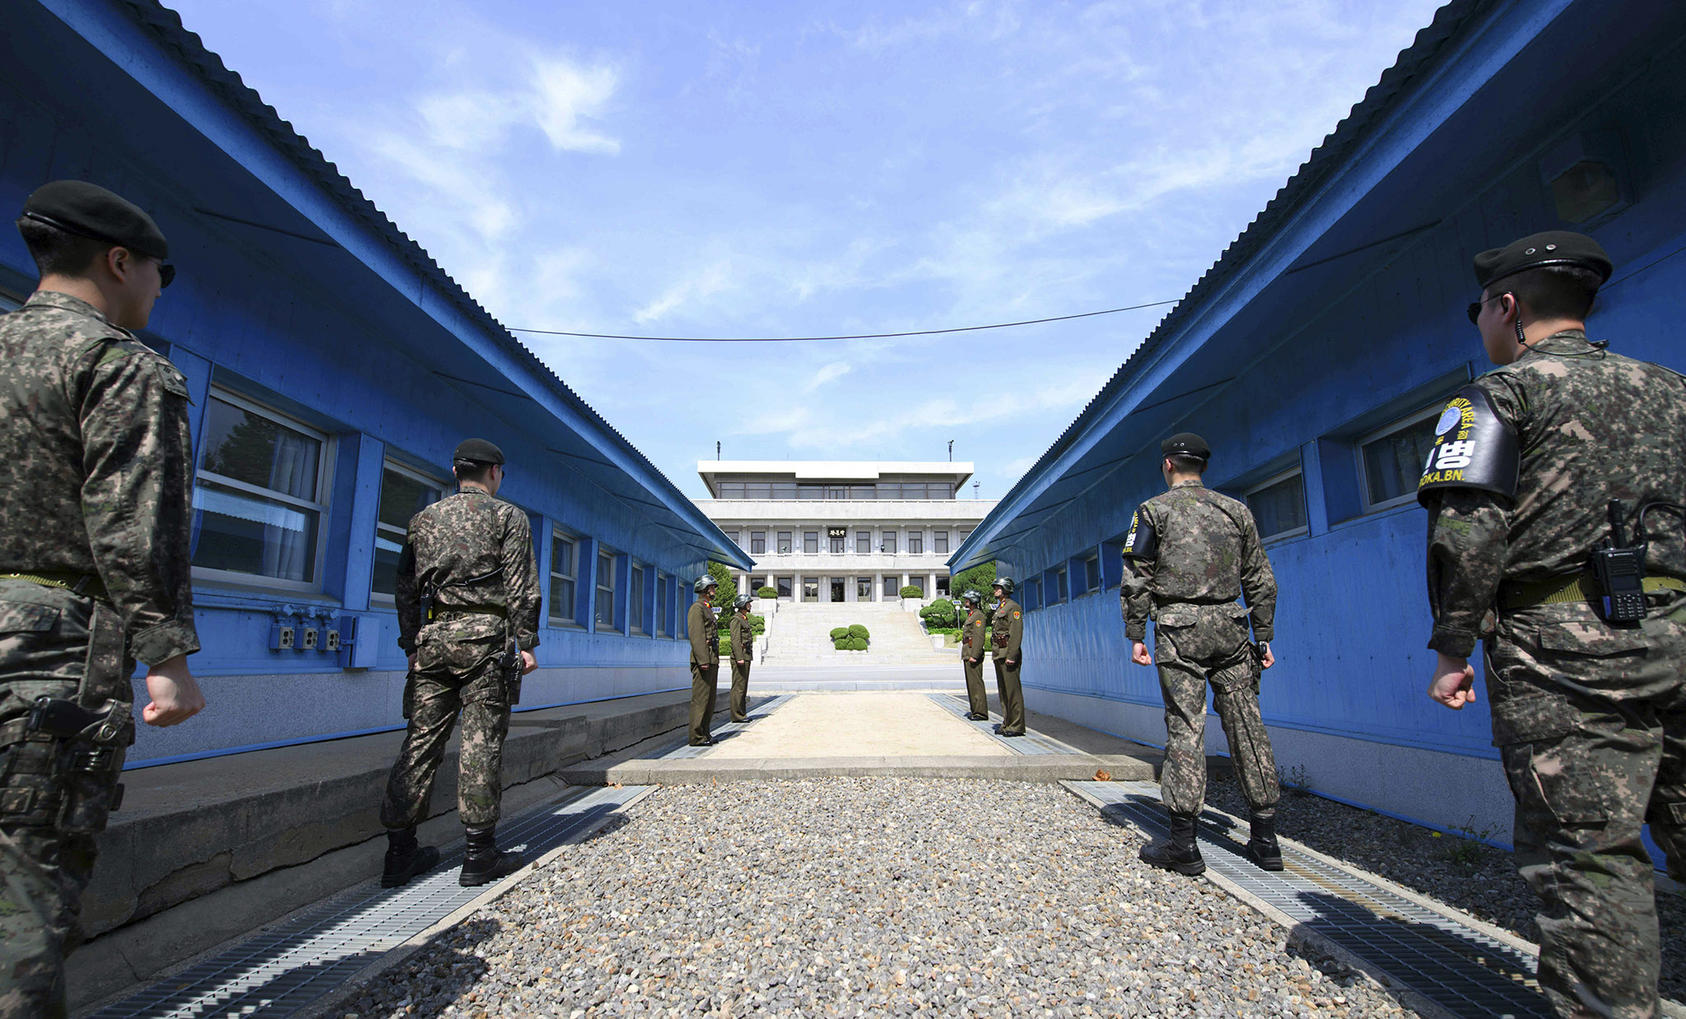 South Korean soldiers, front, and North Korean soldiers, rear, stand guard on either side of the Military Demarcation Line of the Demilitarized Zone dividing the two nations. (Korea Summit Press Pool via New York Times)